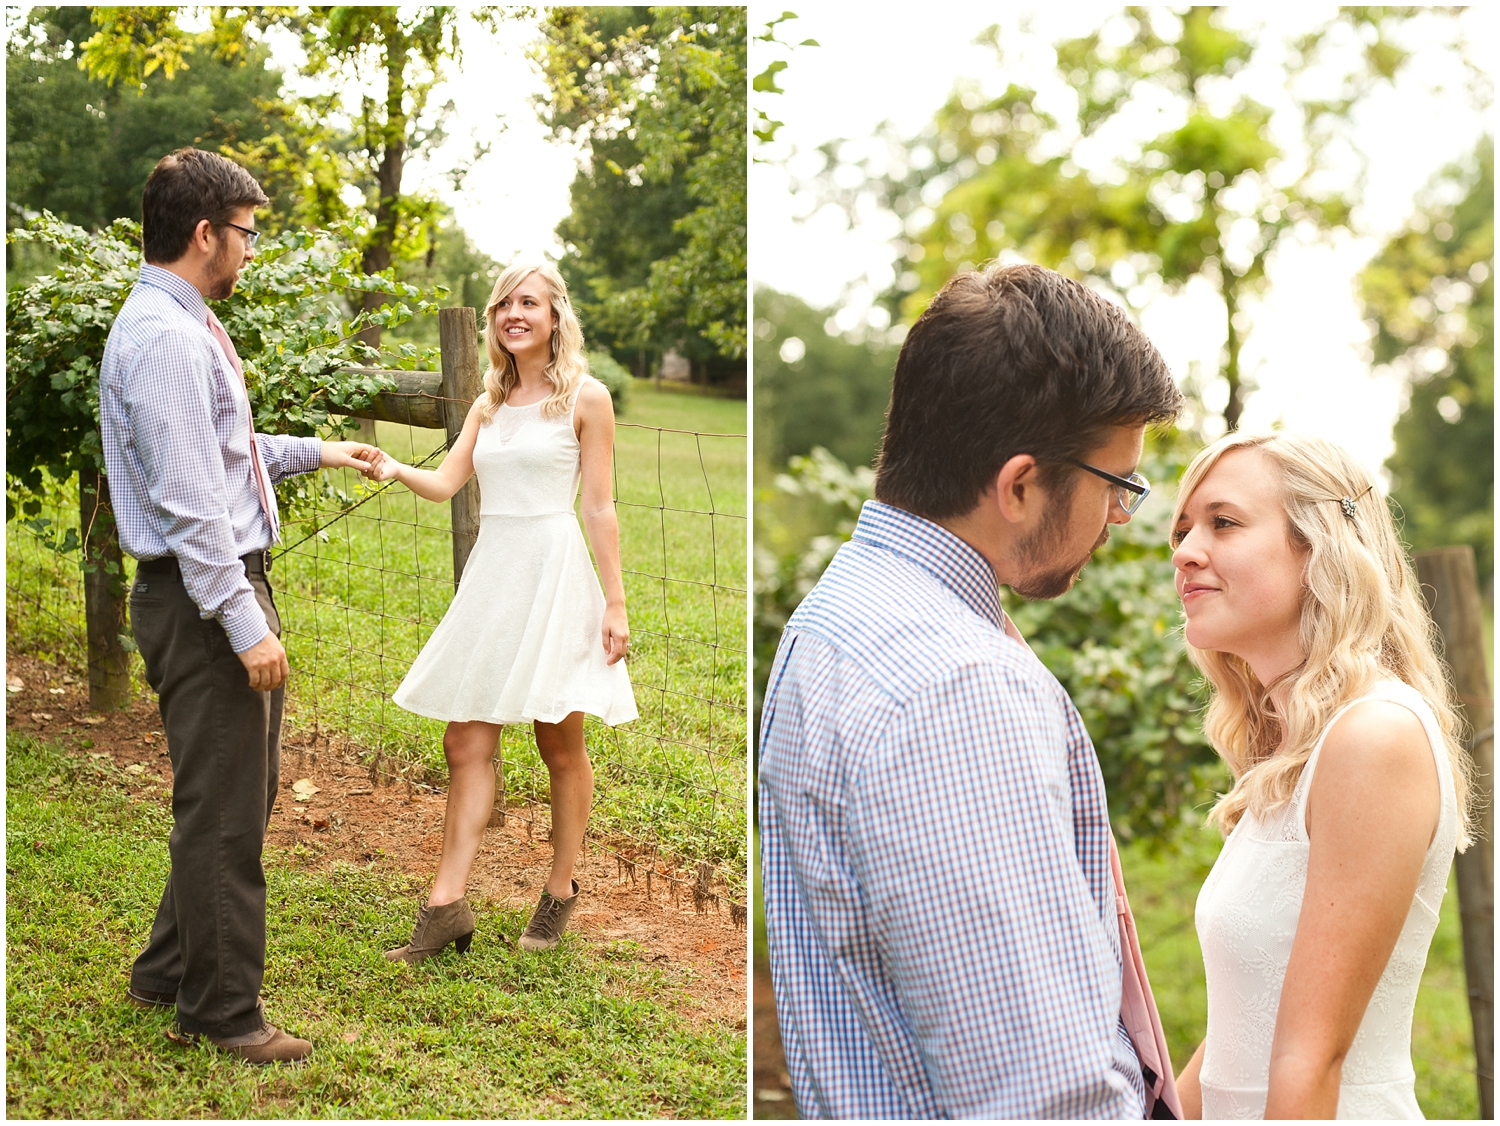 BloomandLo_PeteandAshley_Smithonia_Farm_Wedding_Blog_0063.jpg